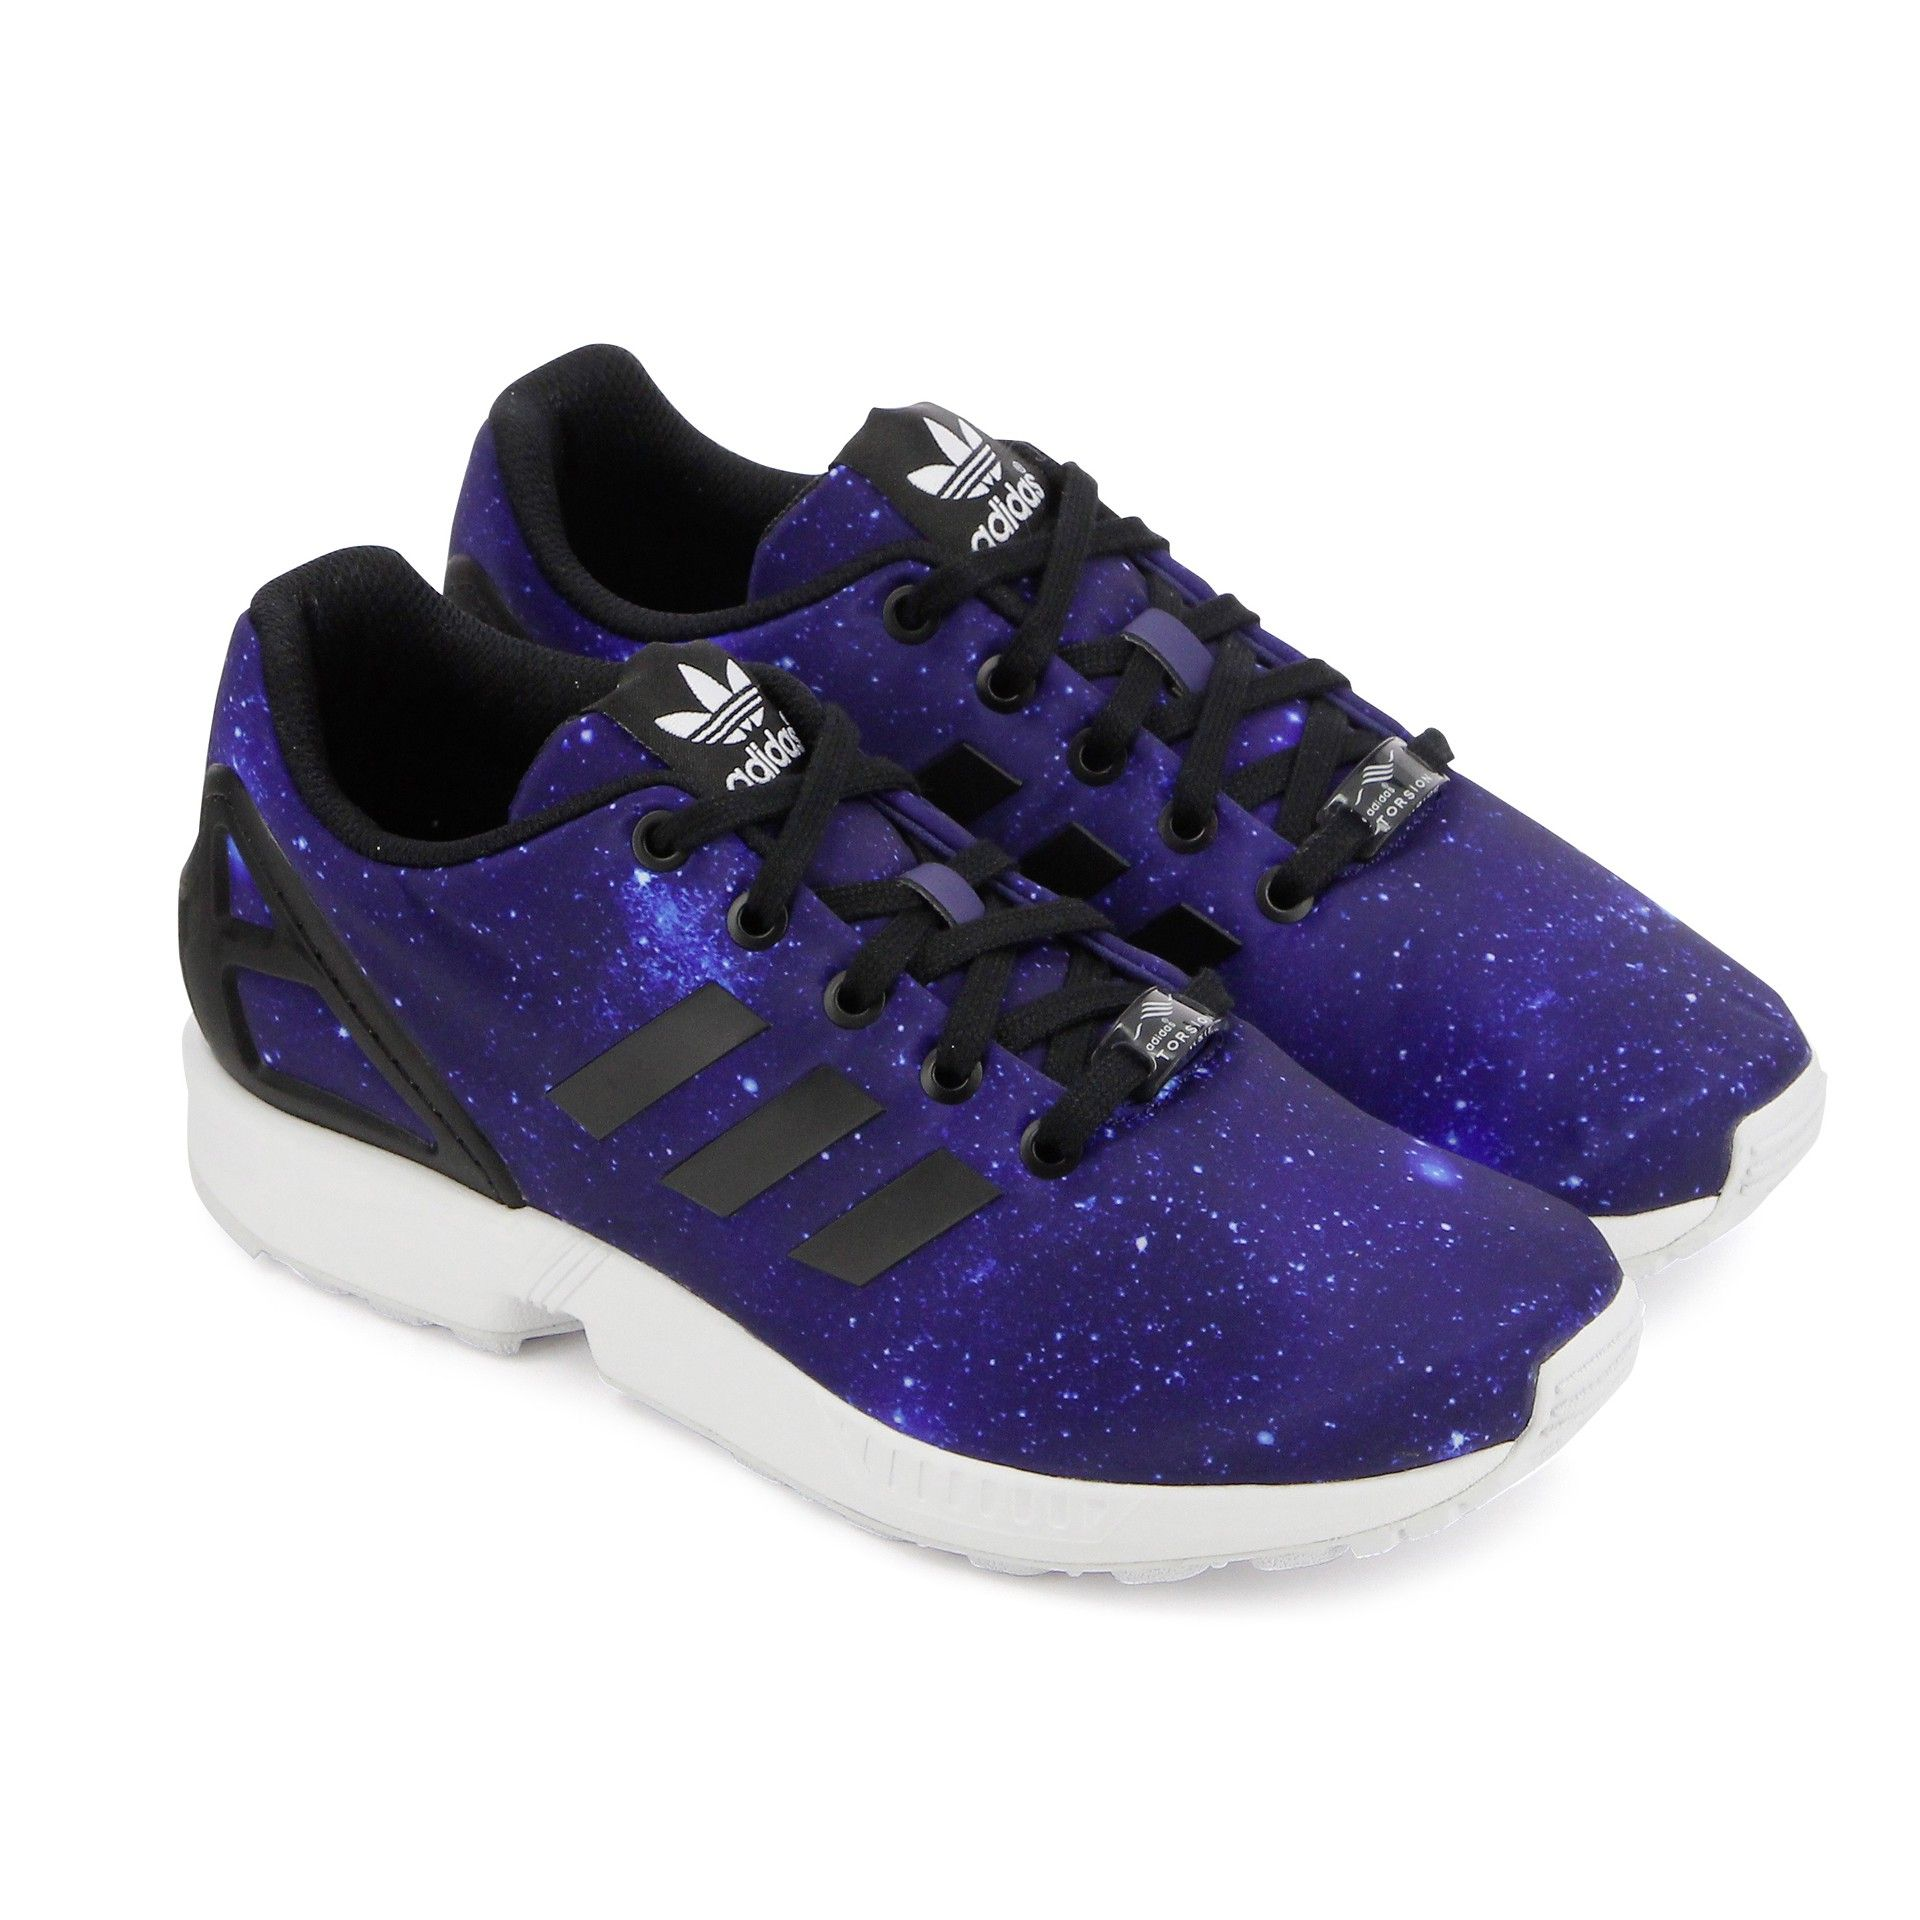 huge discount 199f6 3376b adidas zx flux galaxy - Buscar con Google | shoes. | Adidas ...